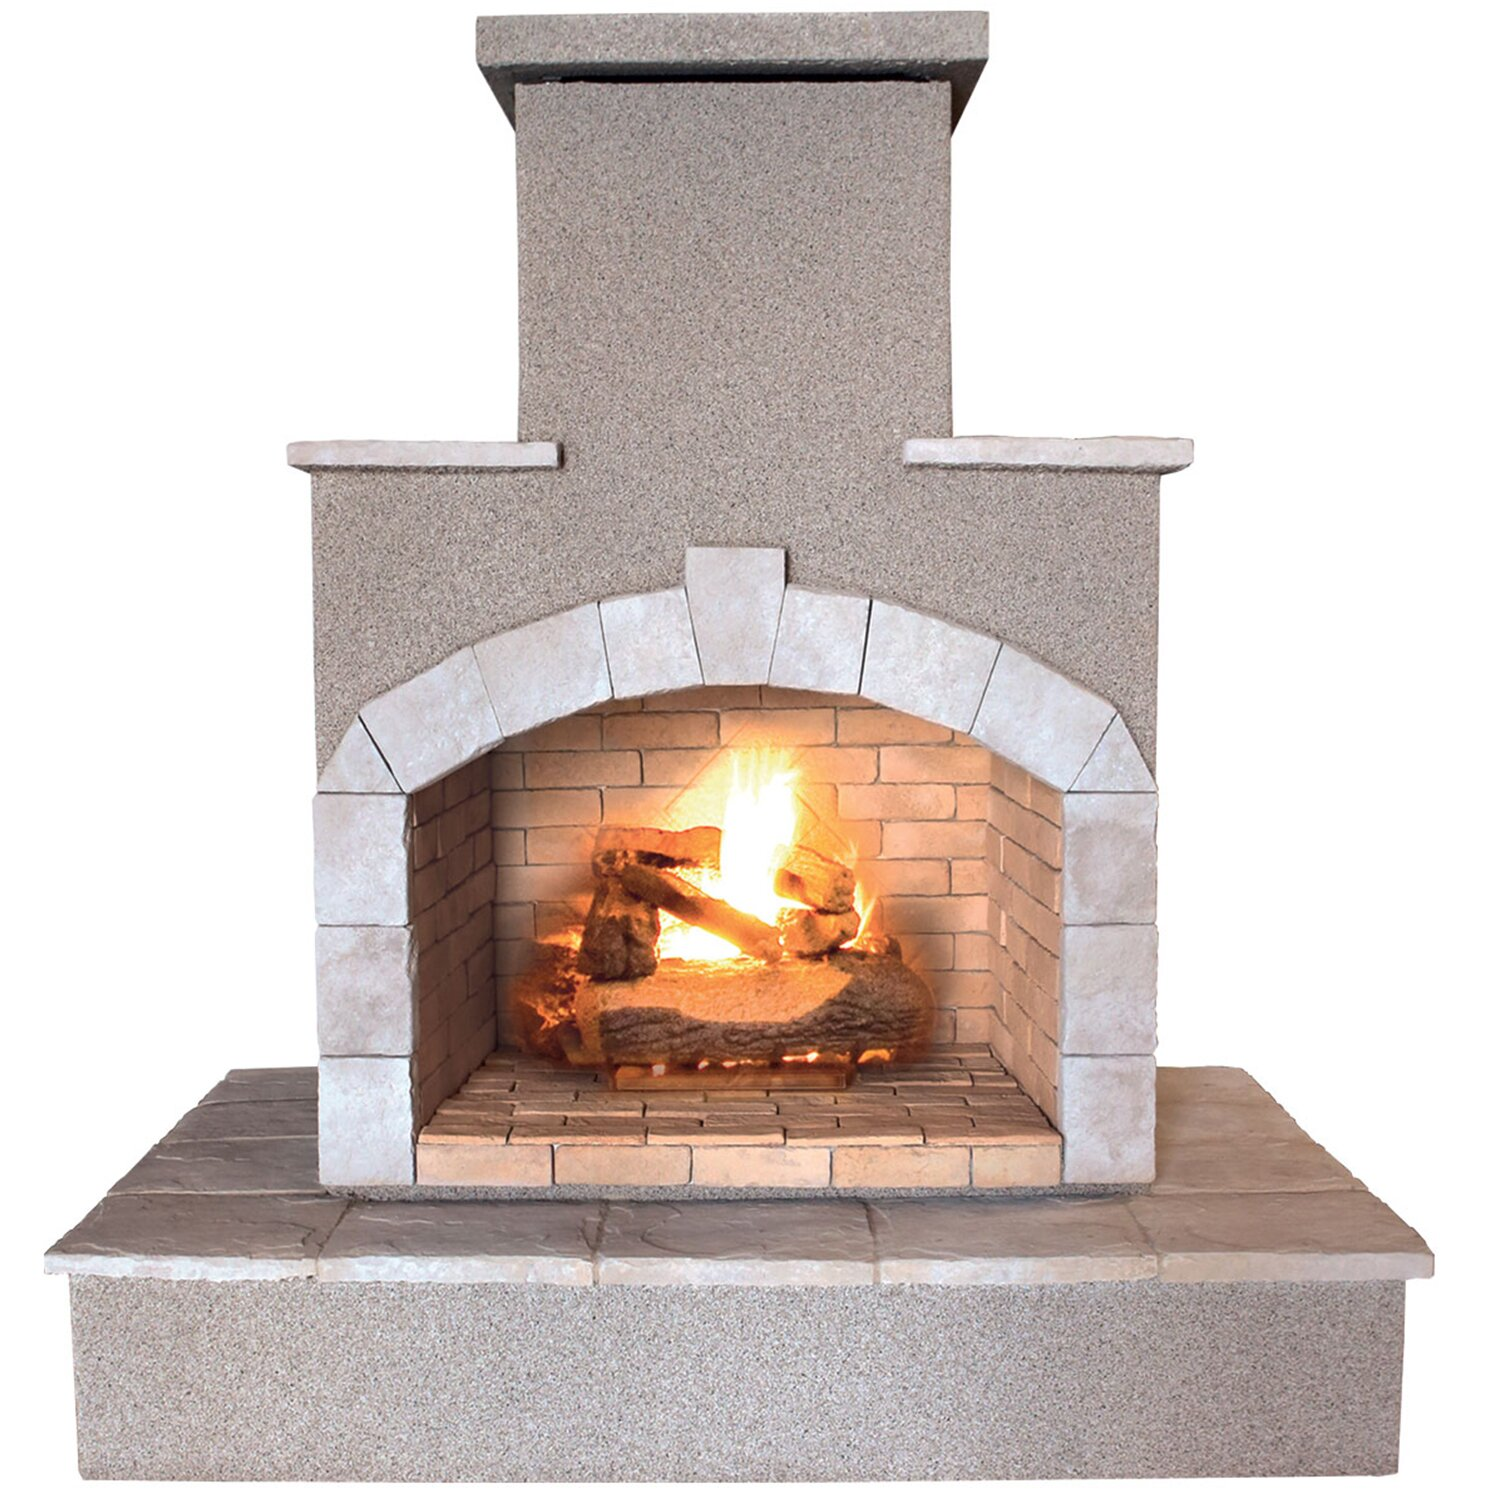 Calflame Propane Gas Outdoor Fireplace Reviews Wayfair